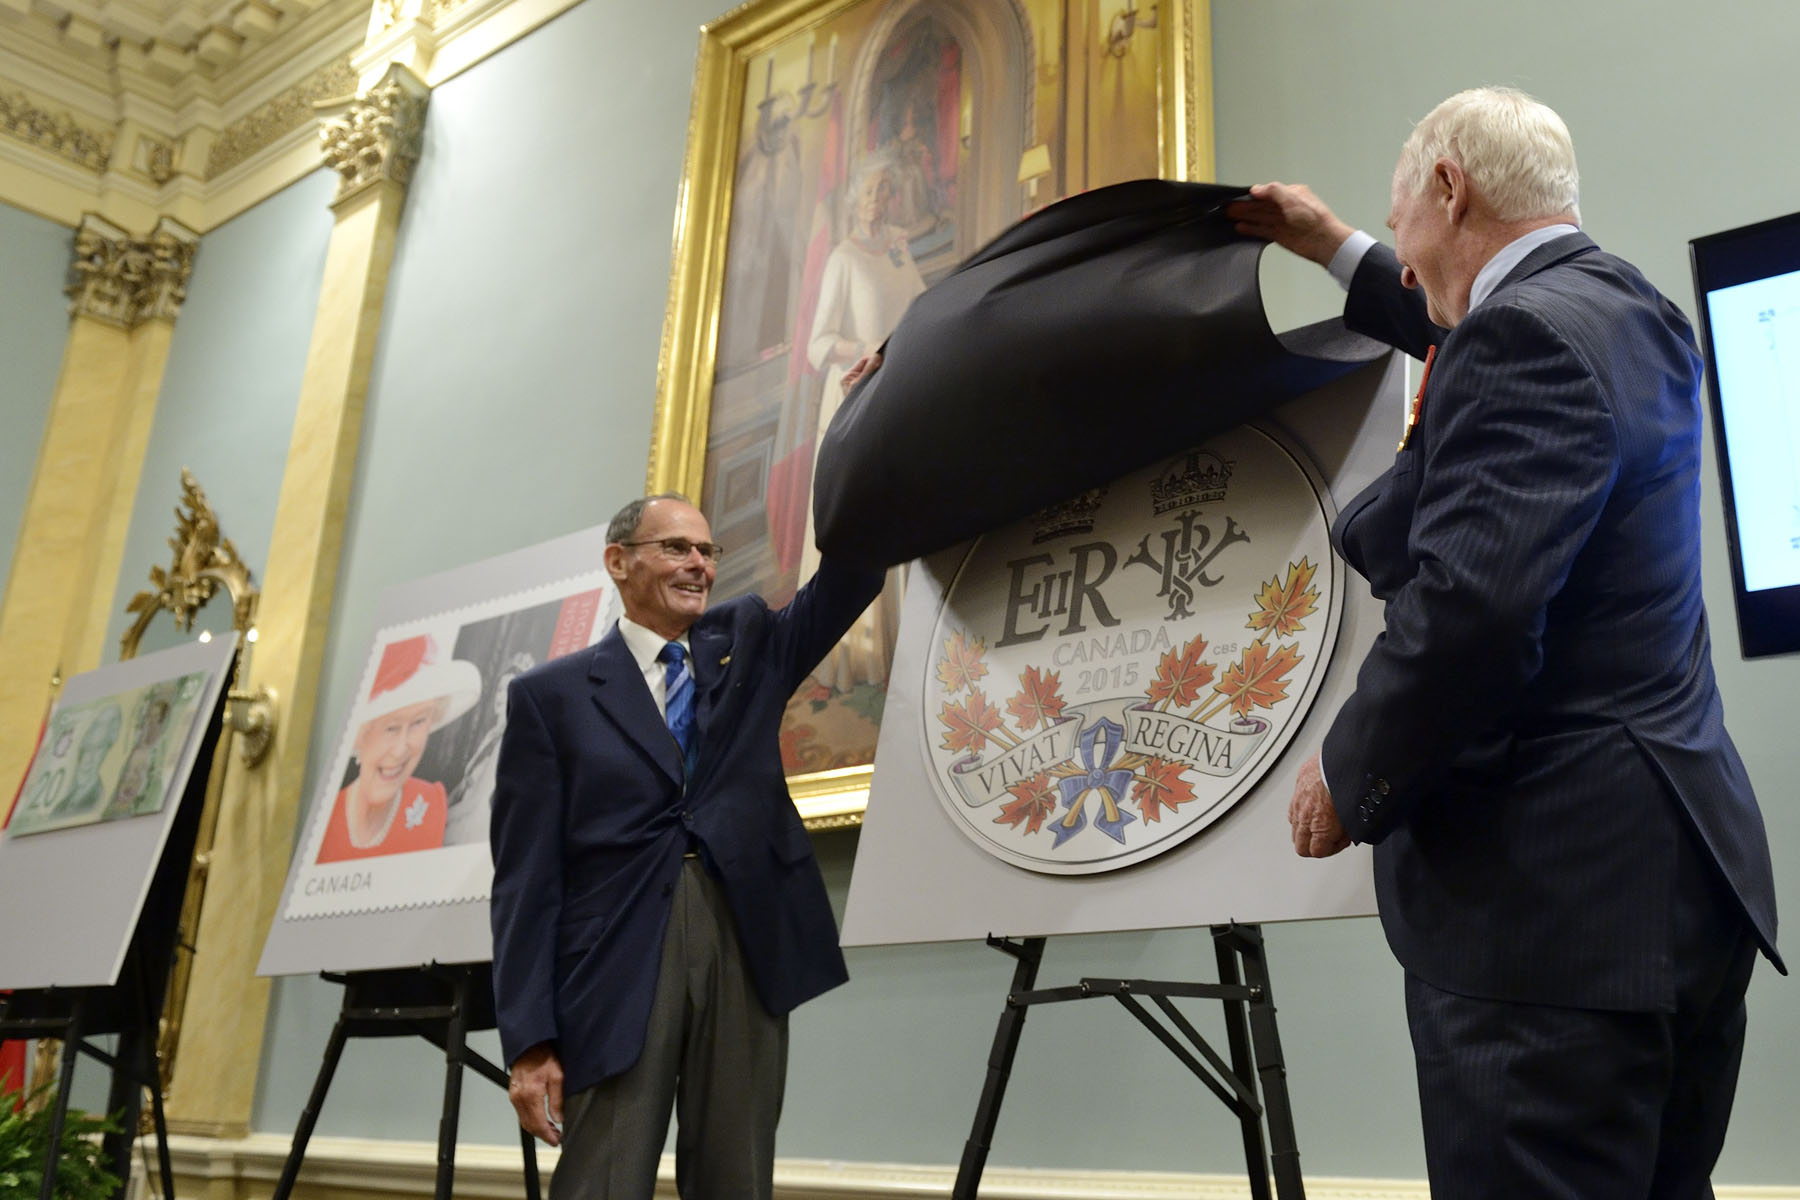 Finally, the Governor General and Mr. Claude Bennett, Member of the Board of Directors of the Royal Canadian Mint, unveiled a new coin commemorating this historic reign.